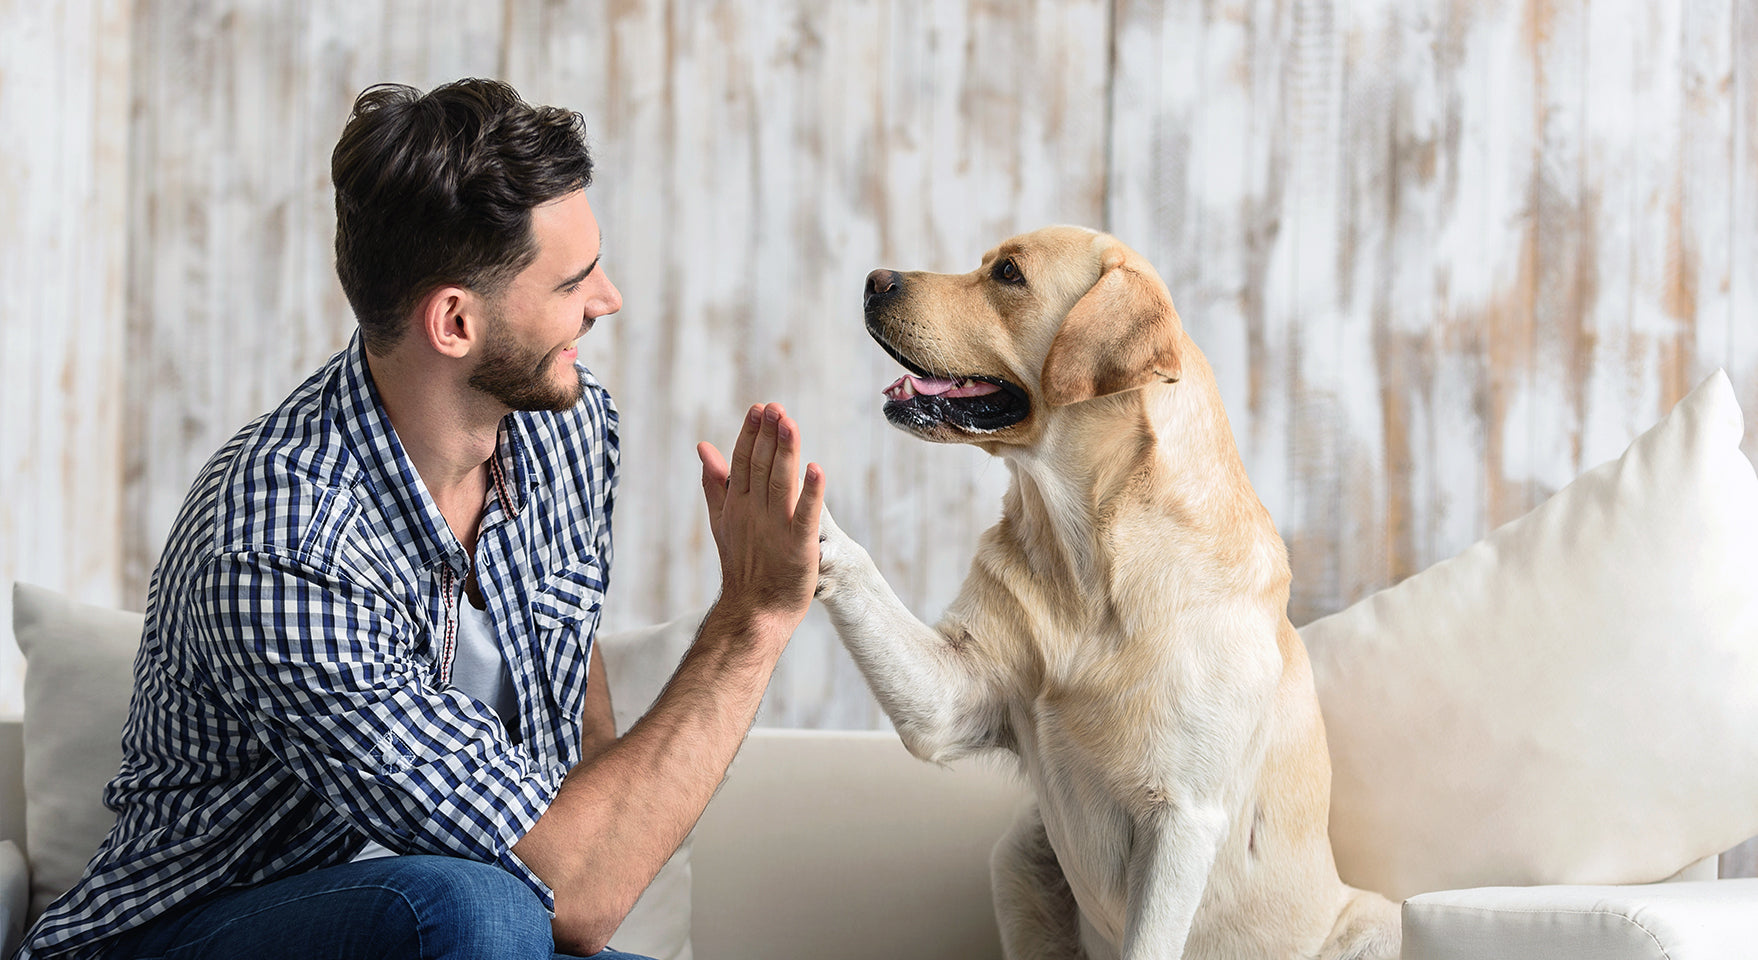 A Dog's Communication - Could Your Dog Be Trying to Tell You Something?